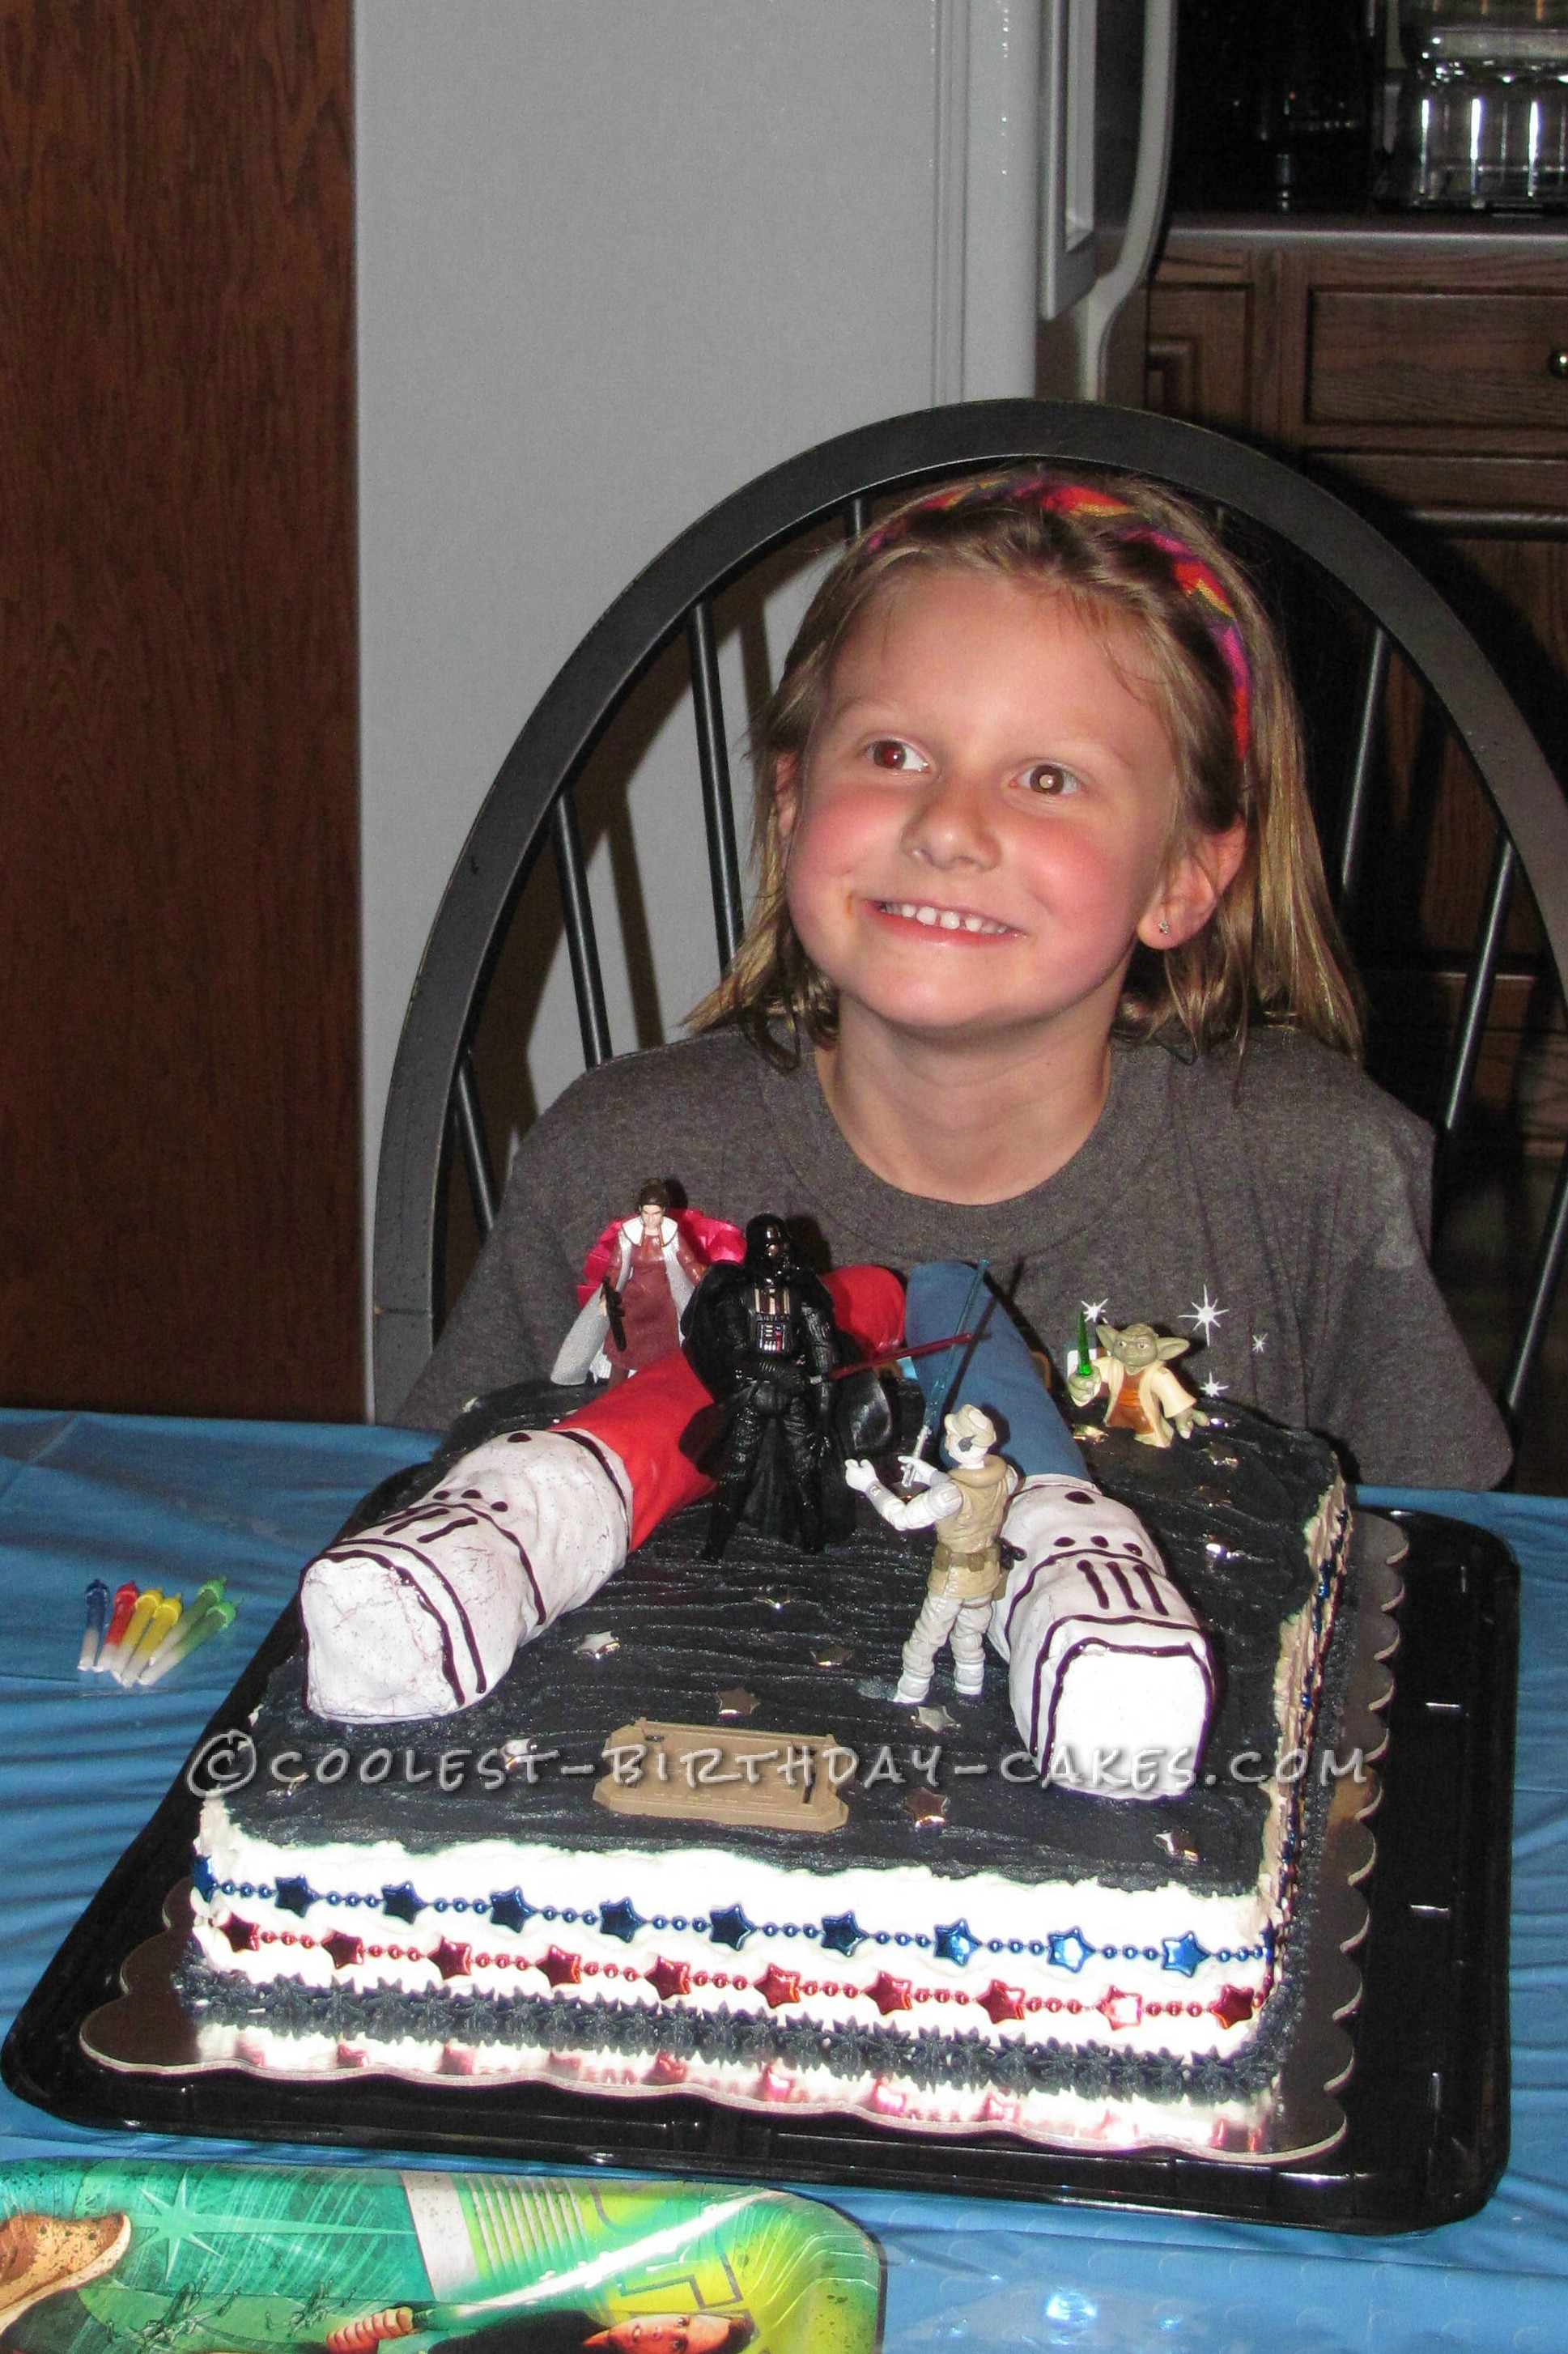 """Coolest """"May the Force Be With You"""" Birthday Cake"""